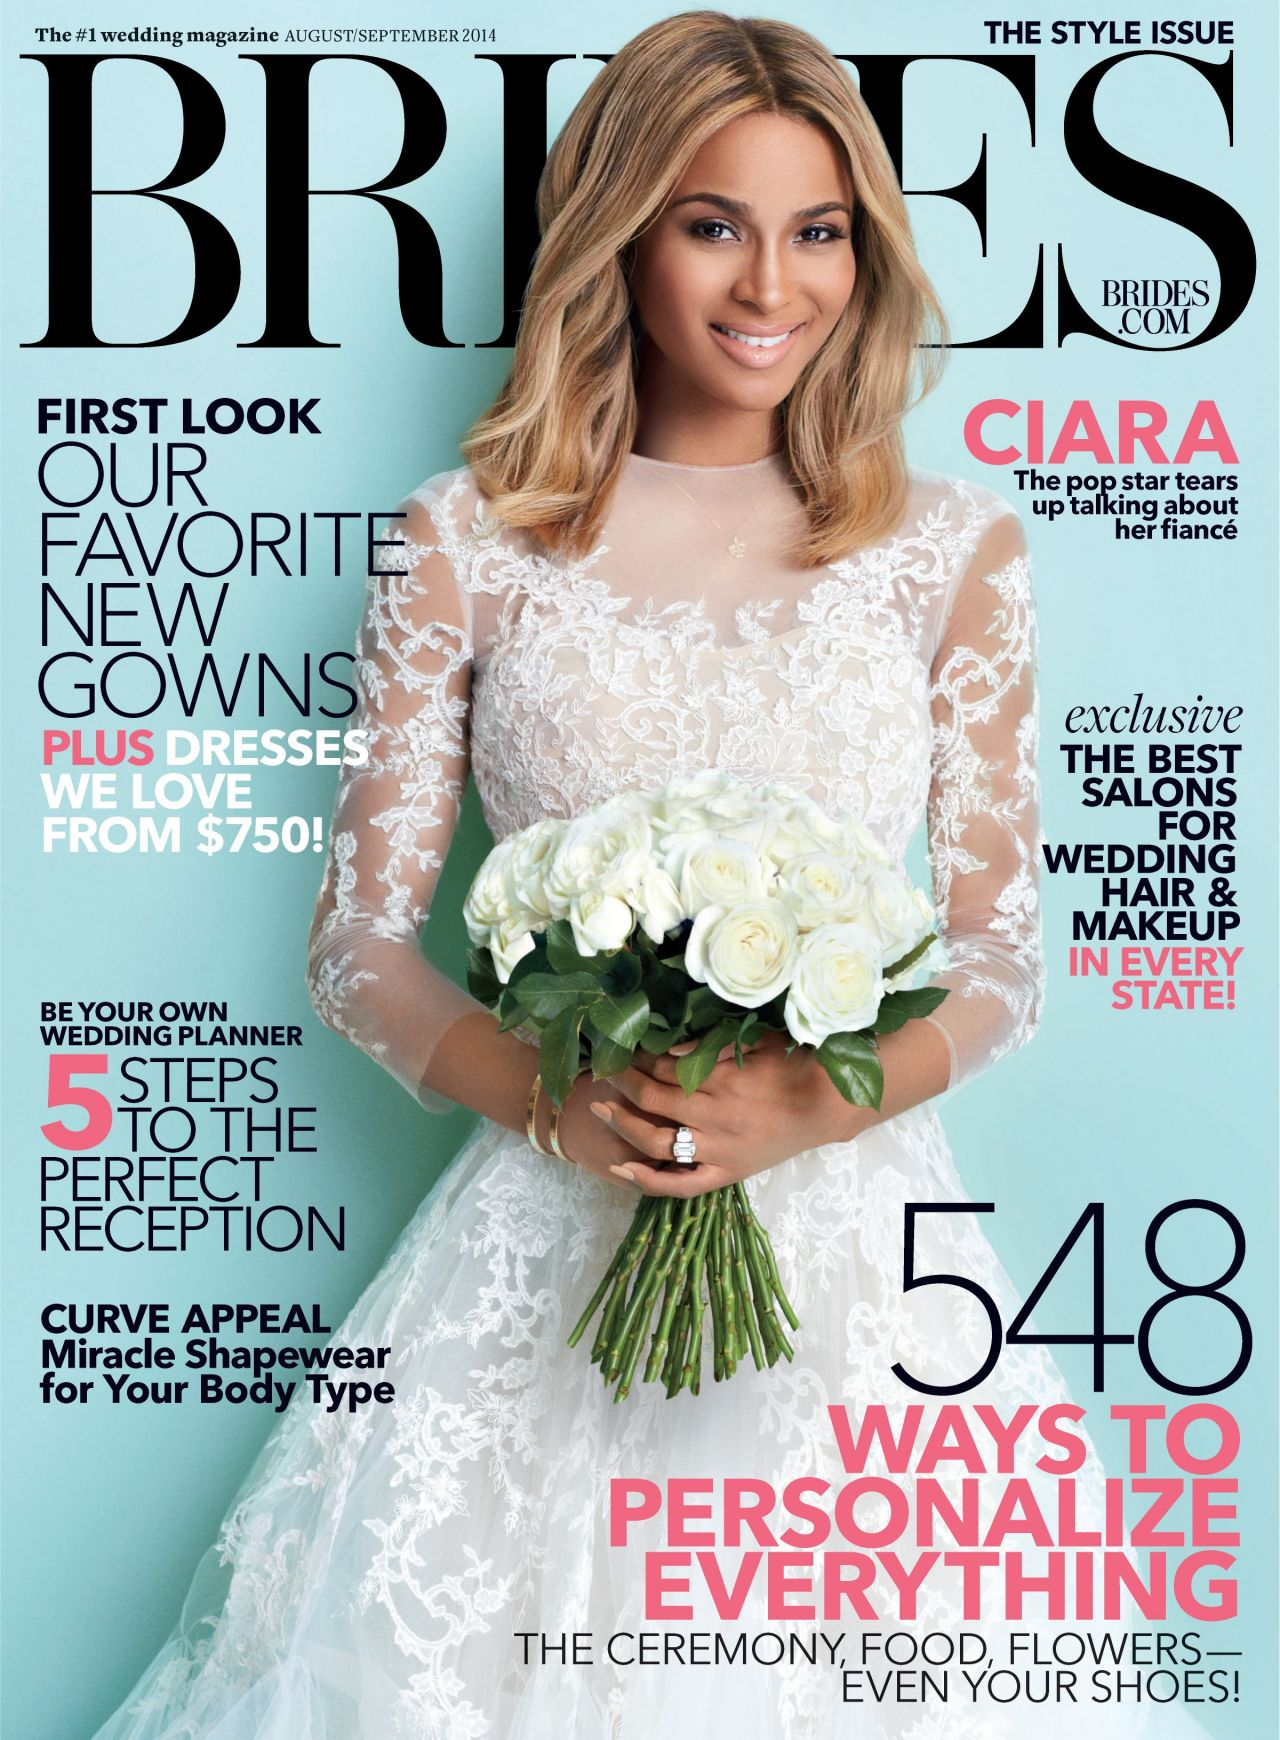 Ciara - Brides Magazine - August/September 2014 Cover